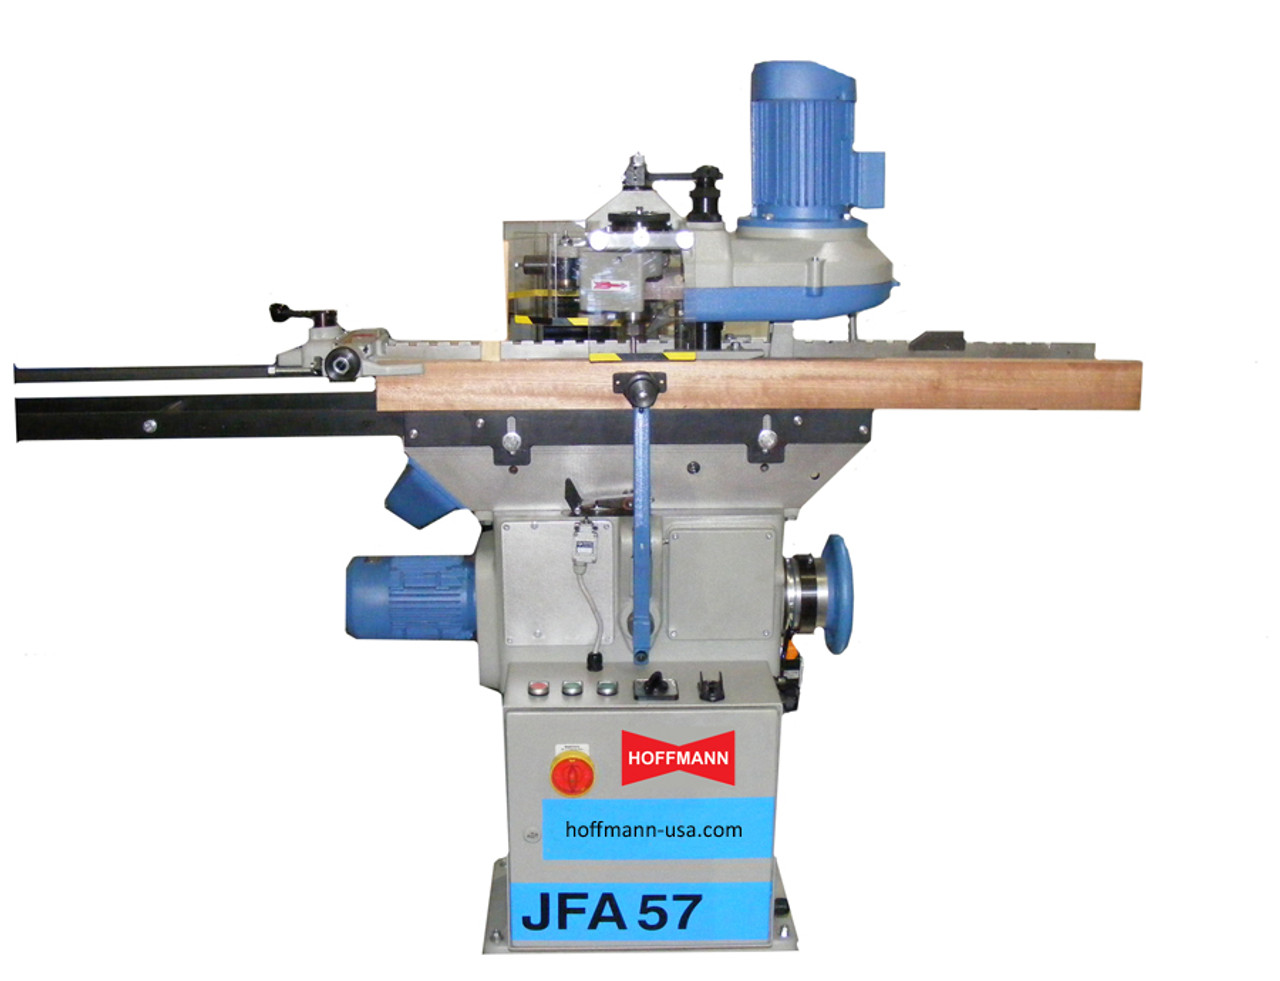 Hoffmann JFA 57 Louver Grooving Machine, full view,, small.jpg